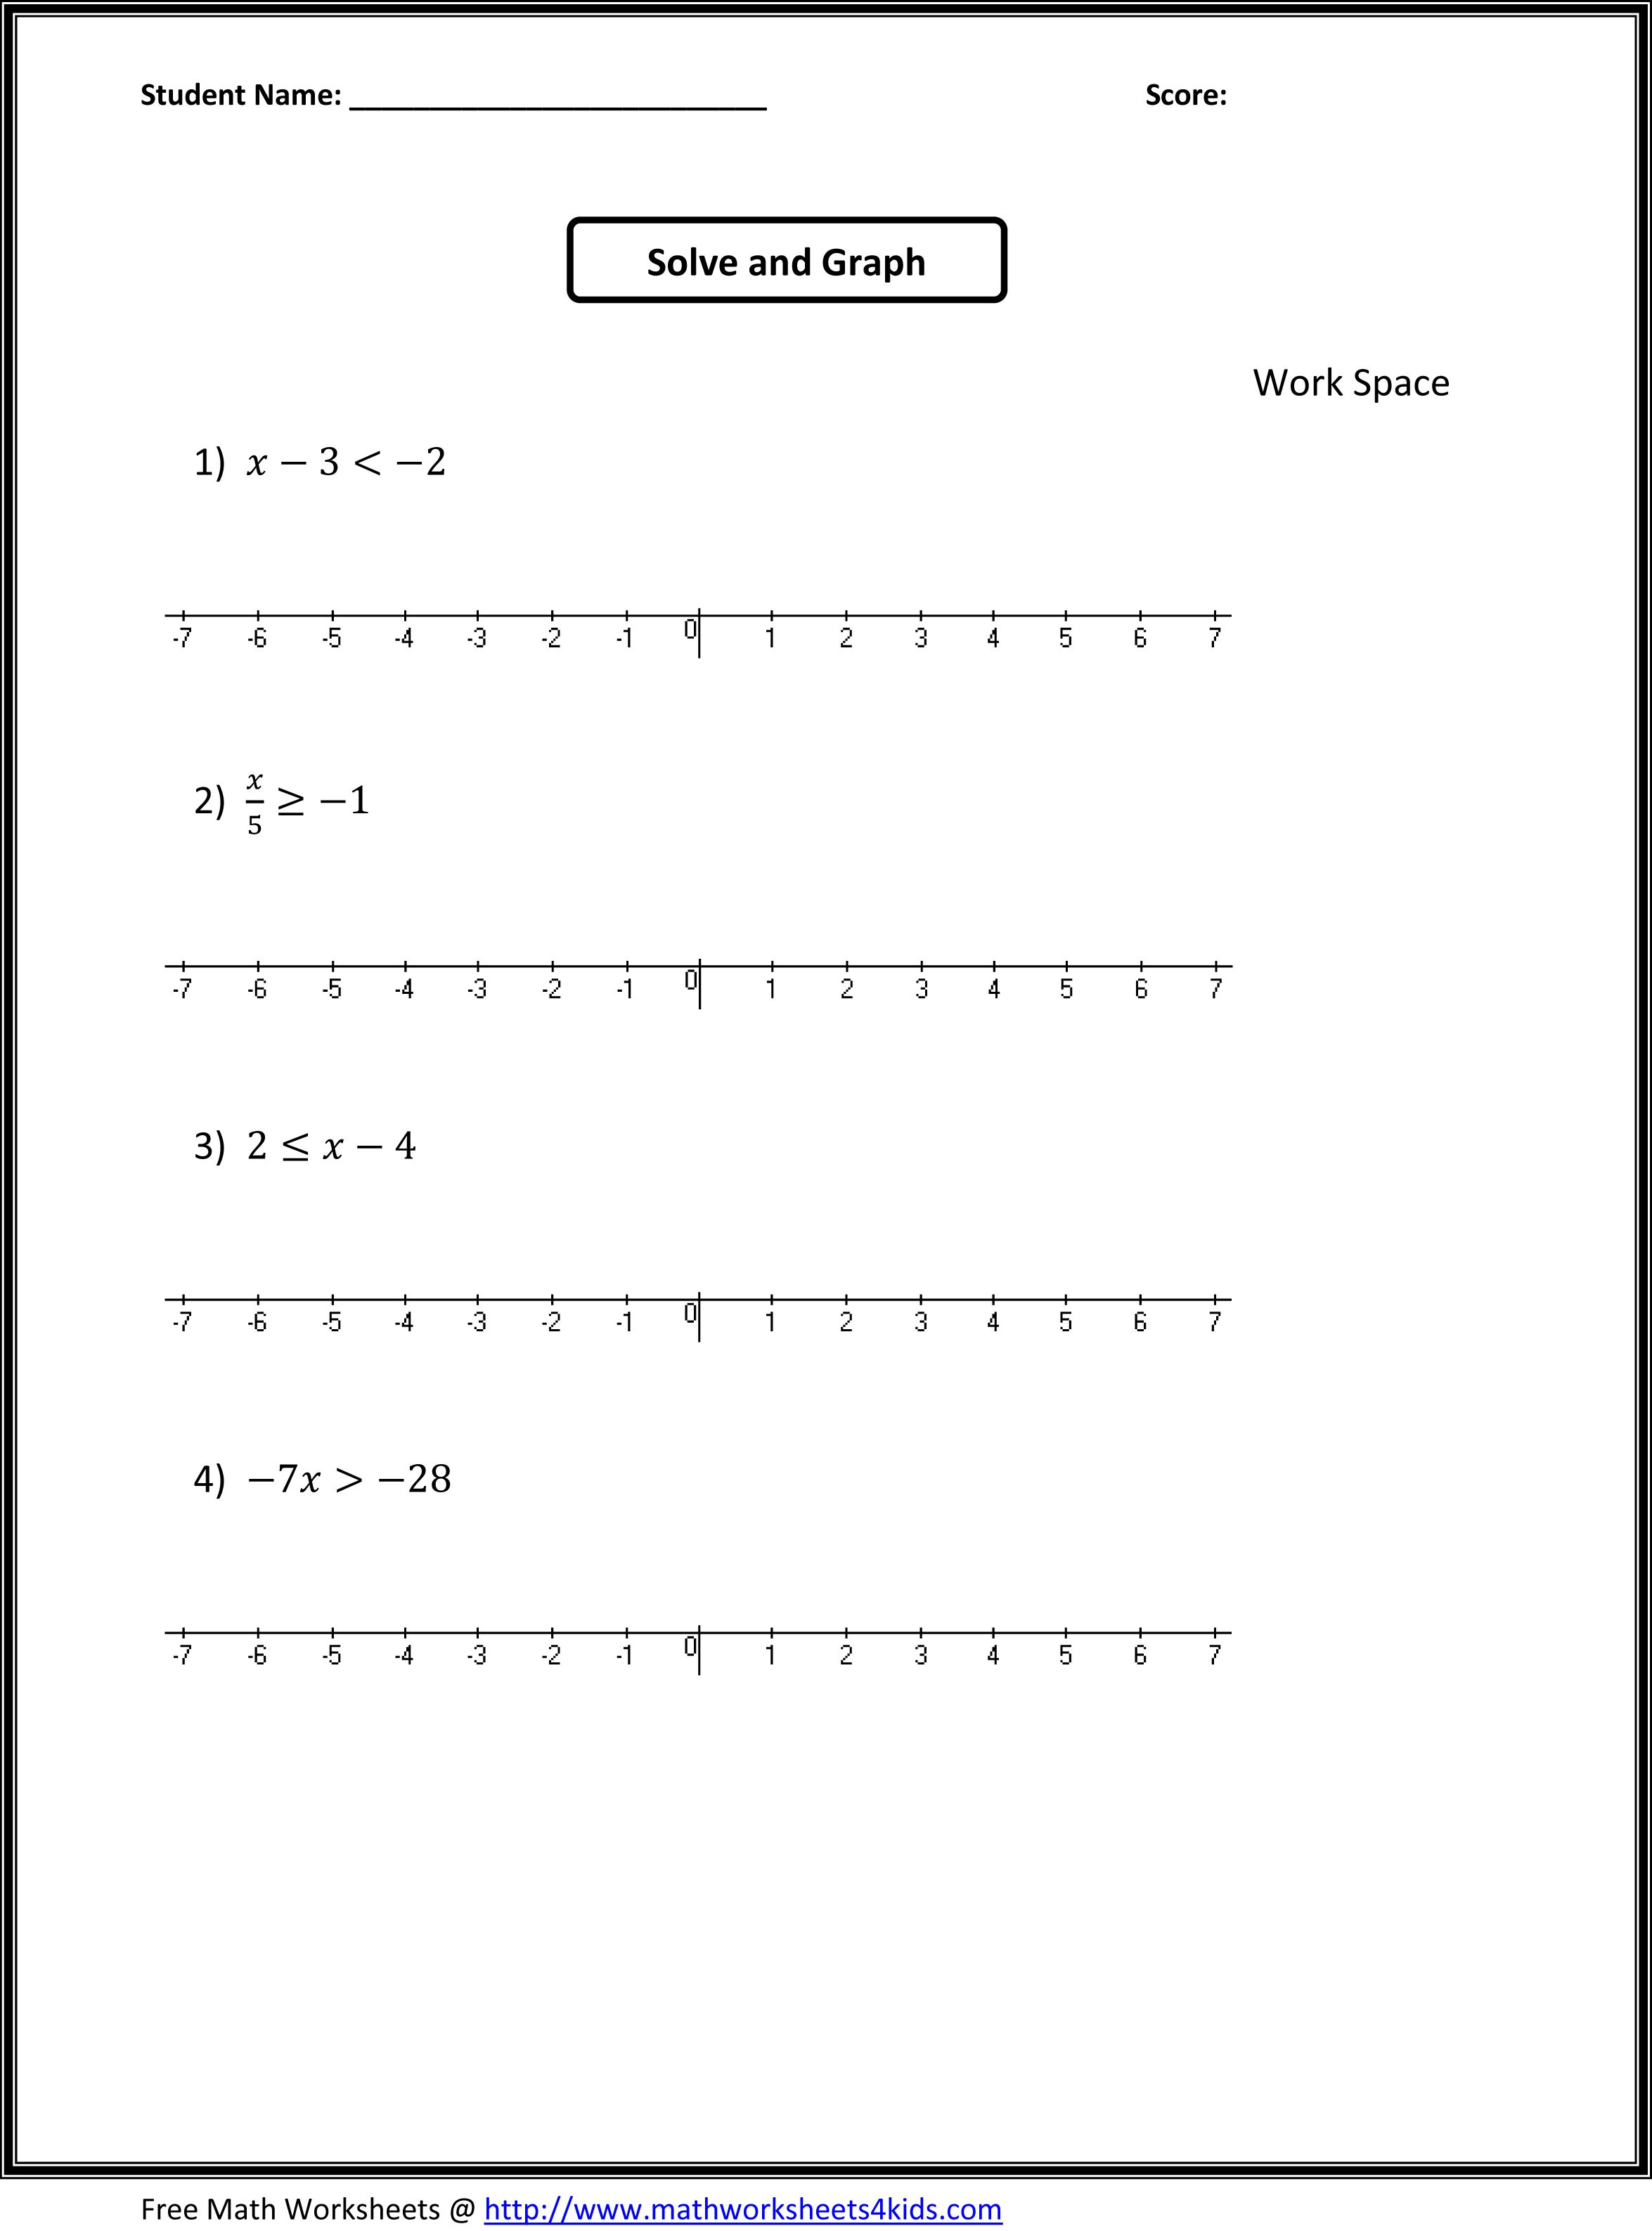 Printables Seventh Grade Math Worksheets printable 7th grade math worksheets syndeomedia 1000 images about on pinterest activities fractions worksheets